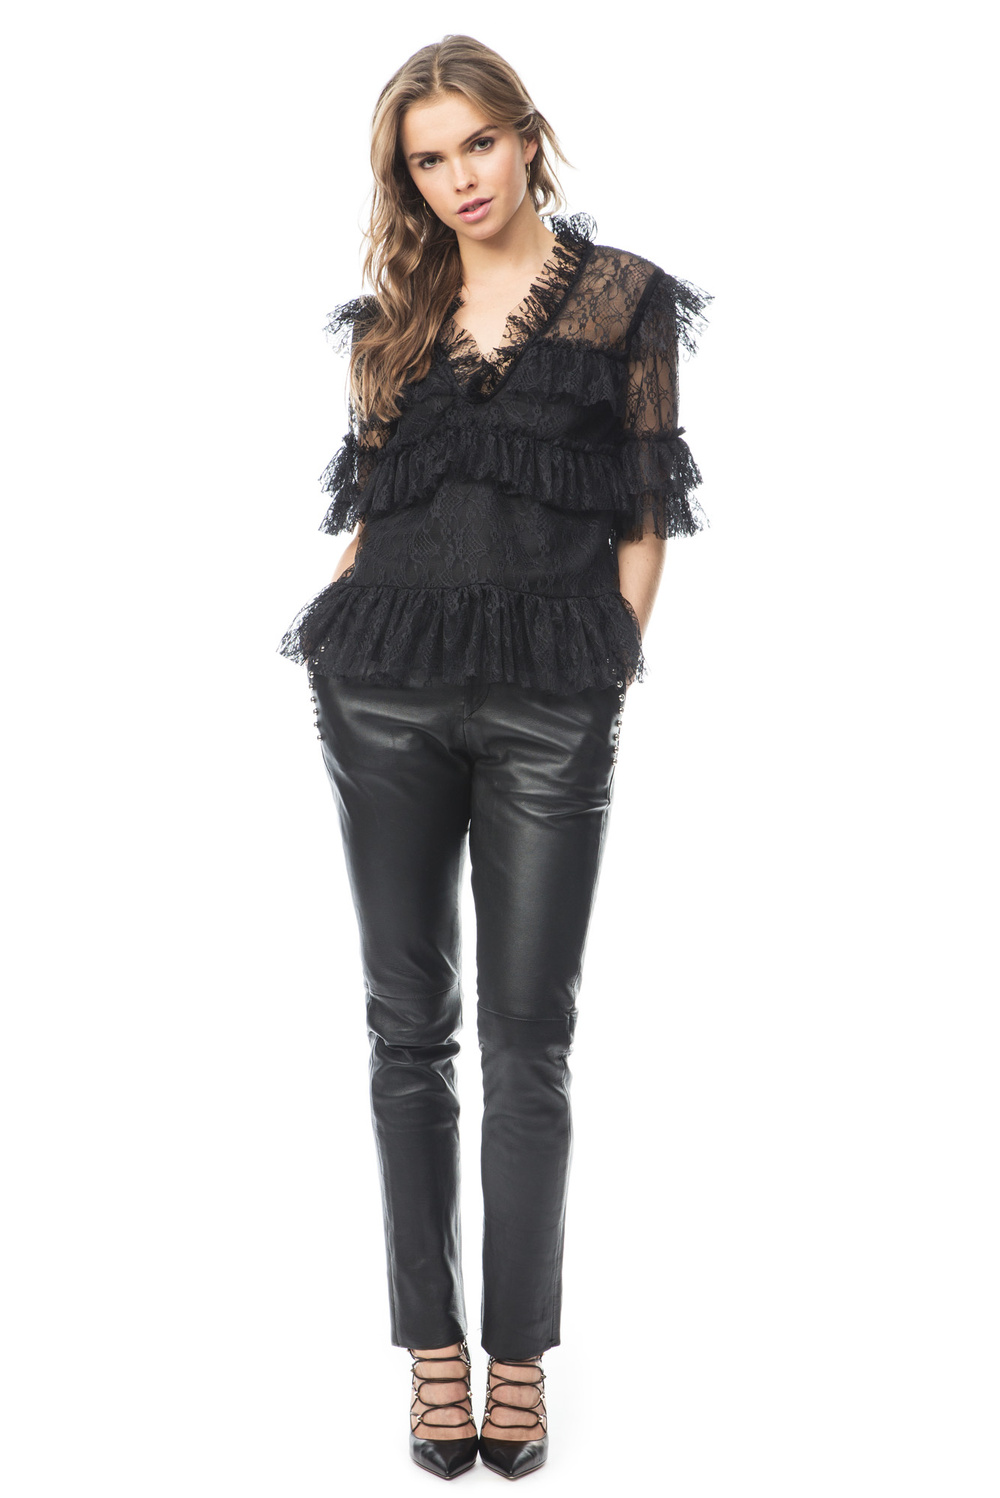 Tone studded leather pants